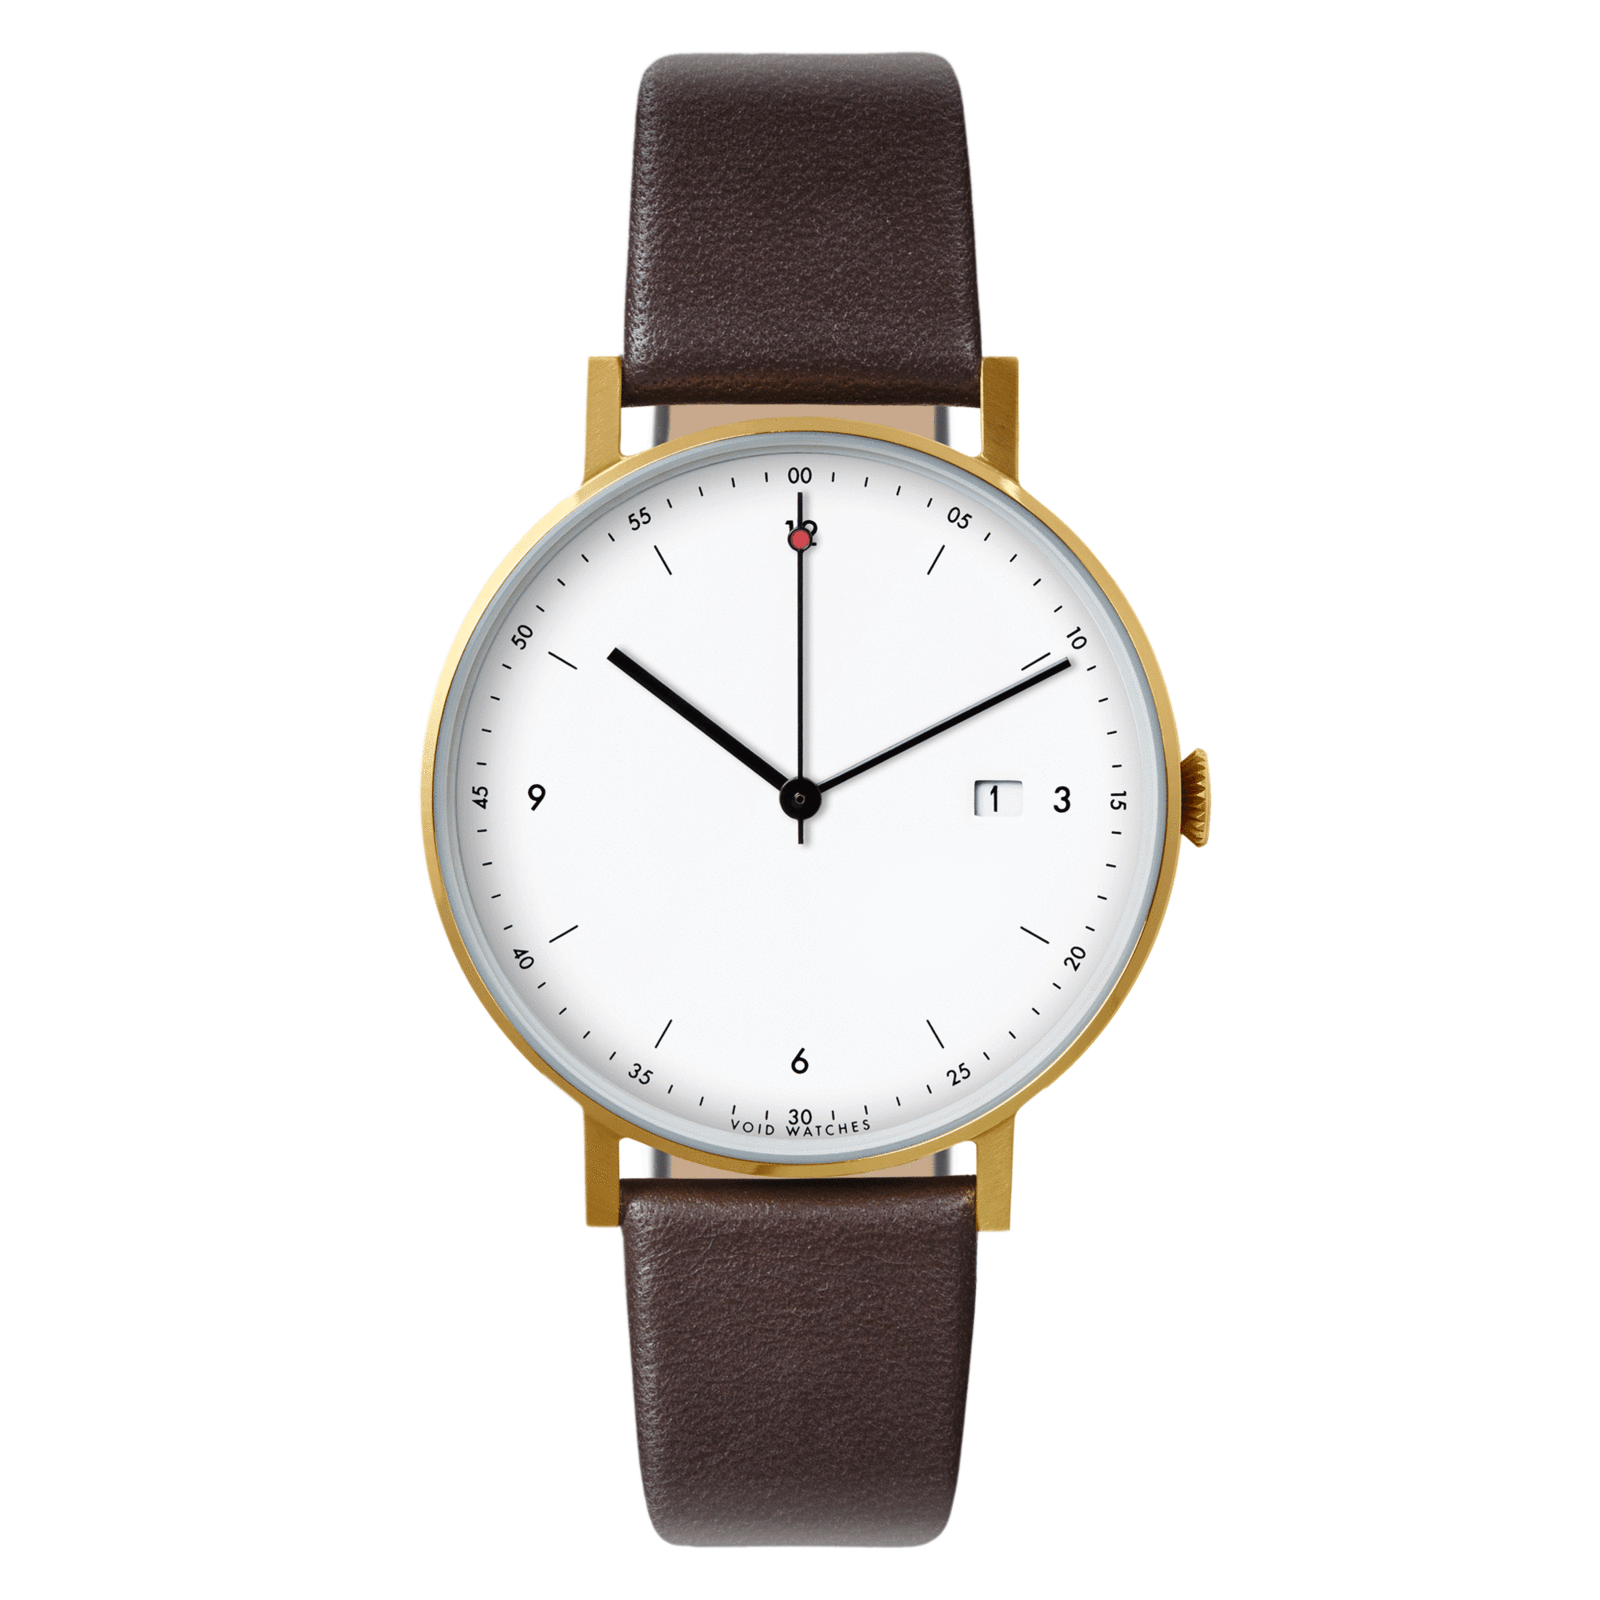 Void Watches - PKG01 Gold Round Date Dark Brown Leather Strap White Dial Classic Date Watch